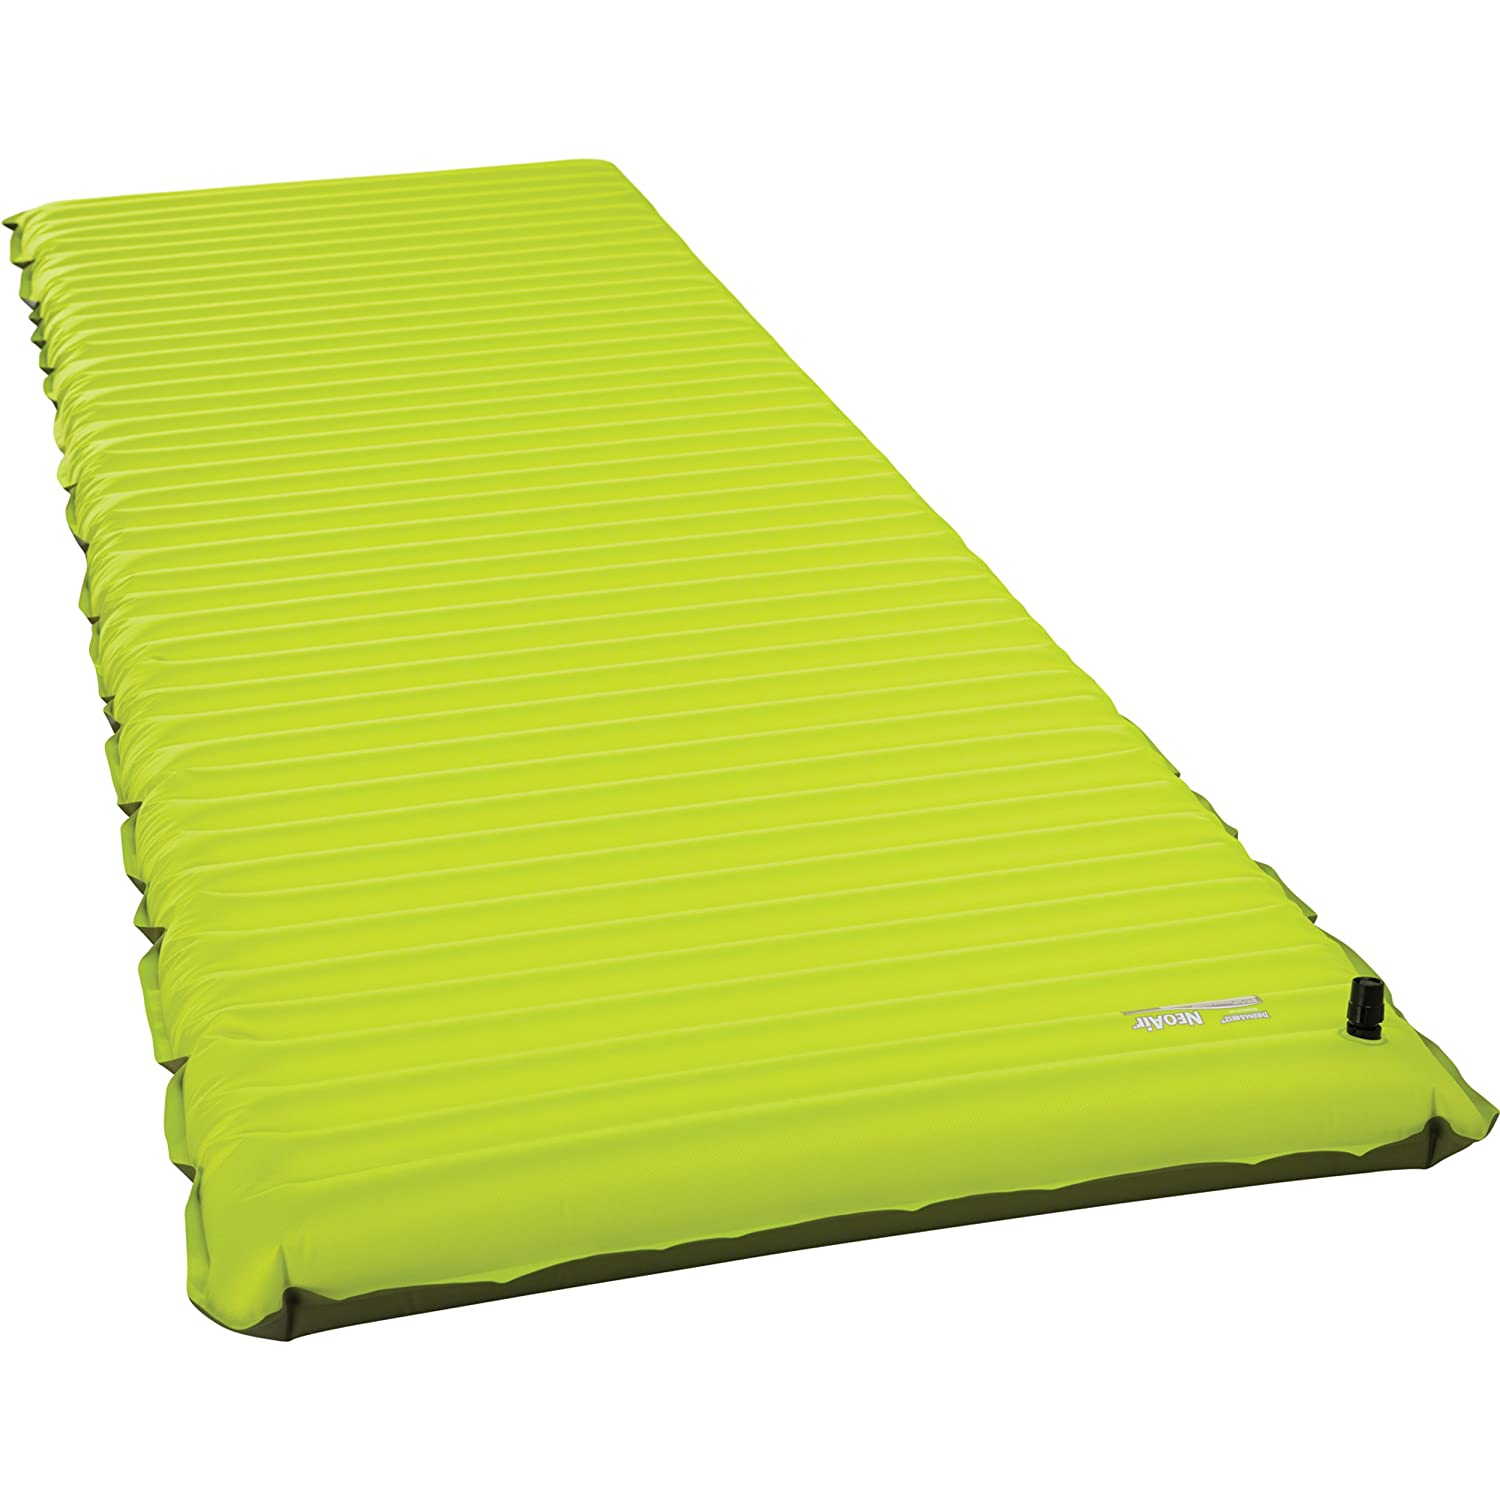 Therm-a-Rest NeoAir Trekker Lightweight Backpacking Air Mattress Large - 25 x 77 Inches Cascade Designs Inc. 040818098318